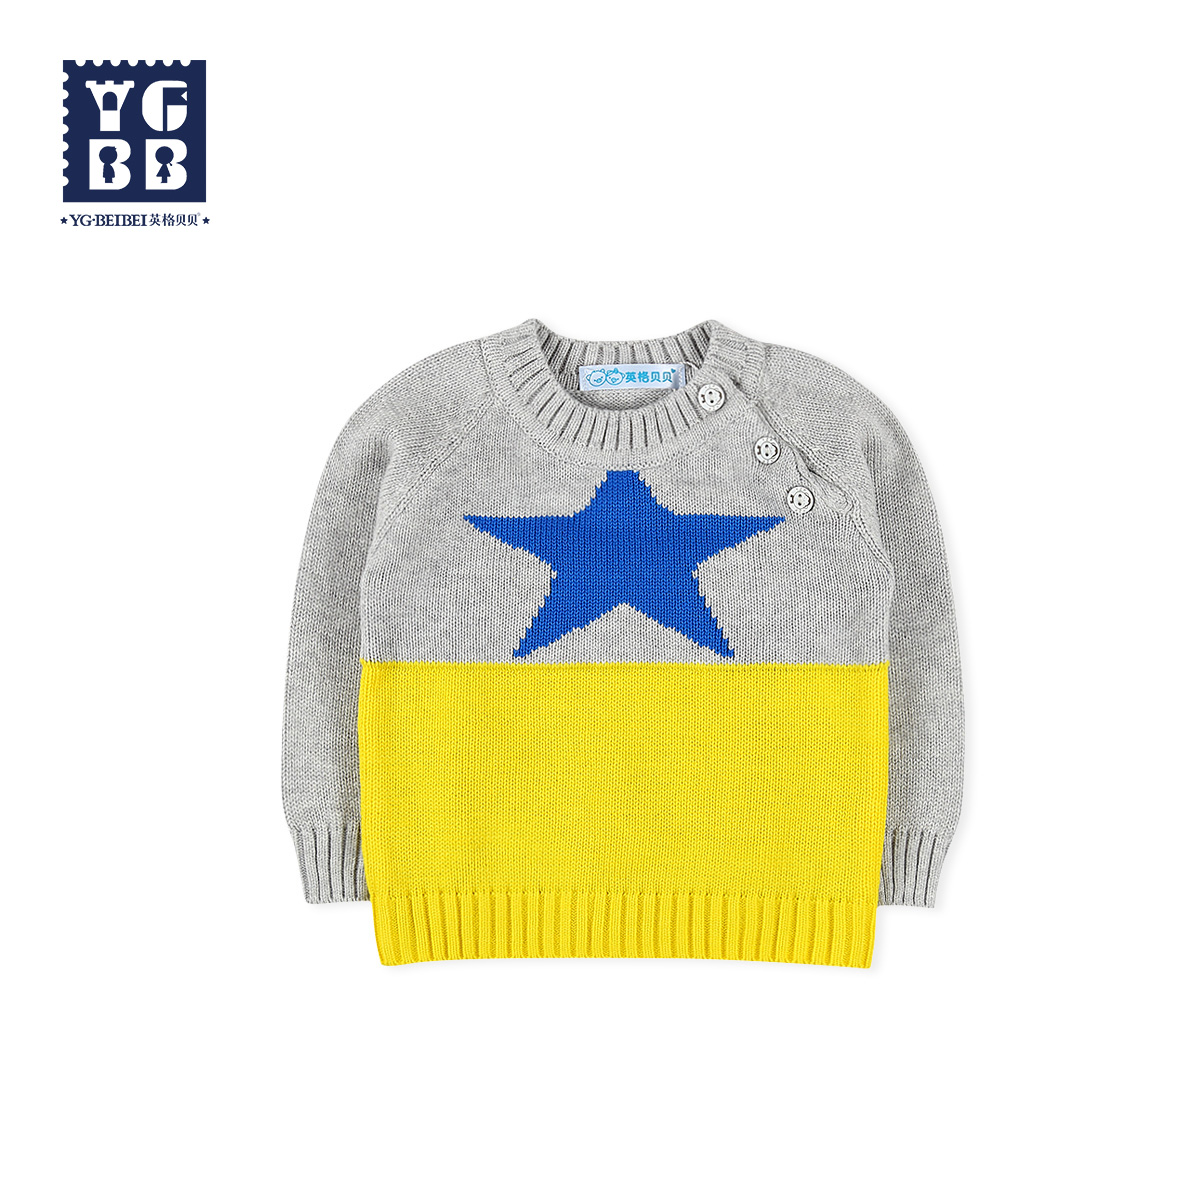 Ying ge beibei spring new baby clothes baby out clothes for men and women spring and autumn sweater knit sweater coat